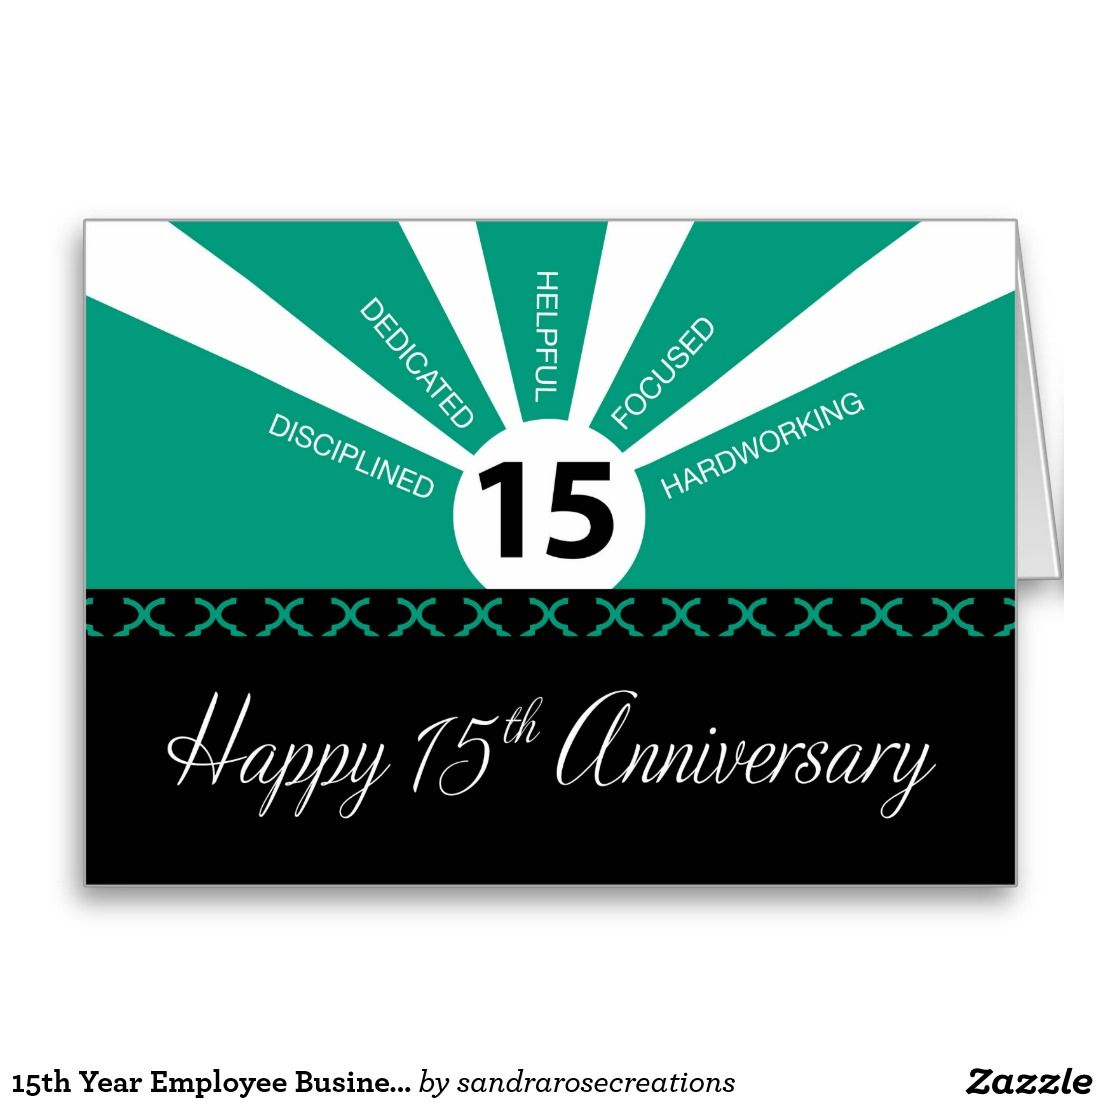 15th year employee business anniversary green card